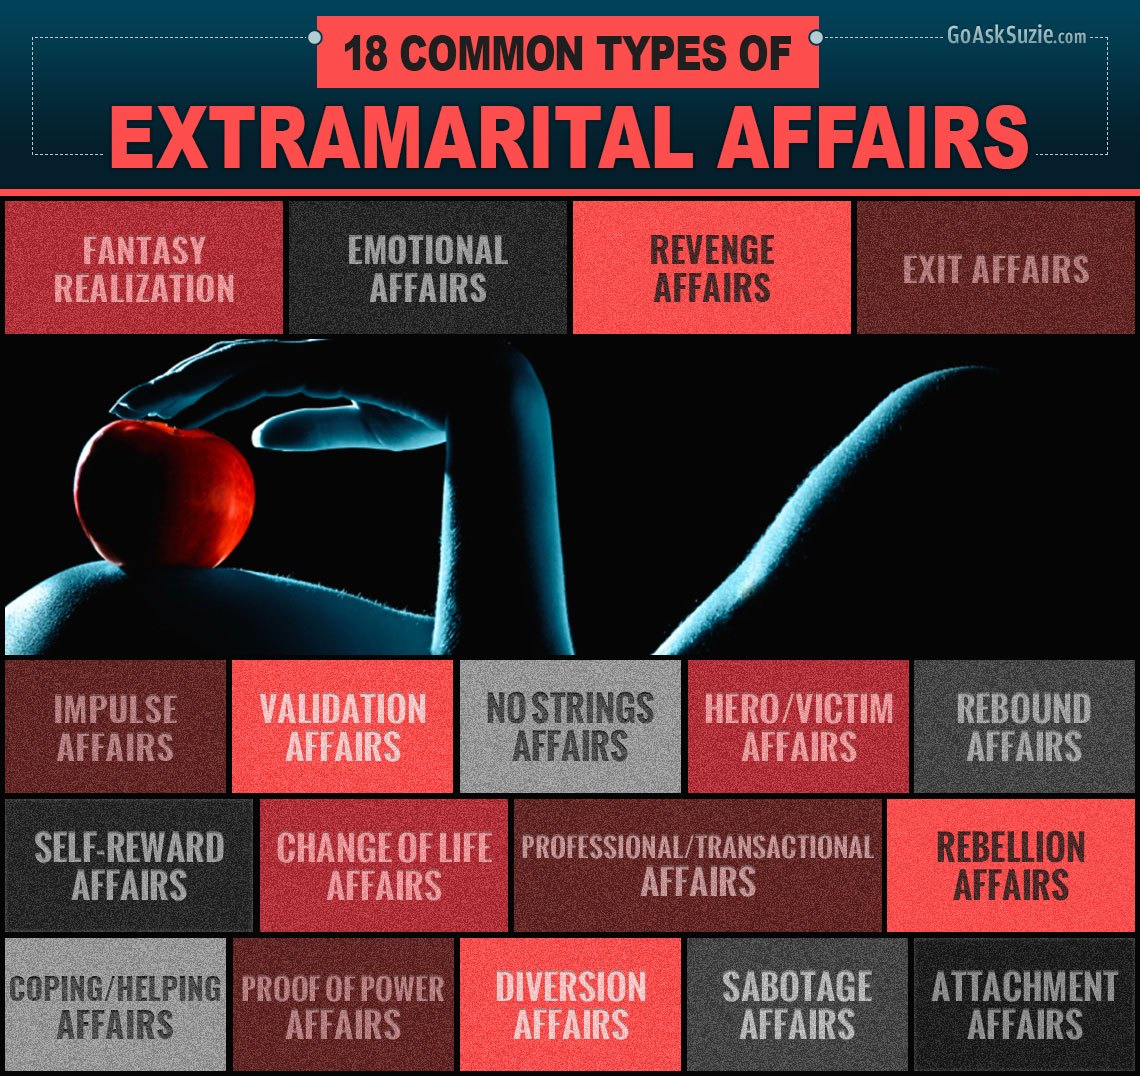 18 Common Types of Extramarital Affairs